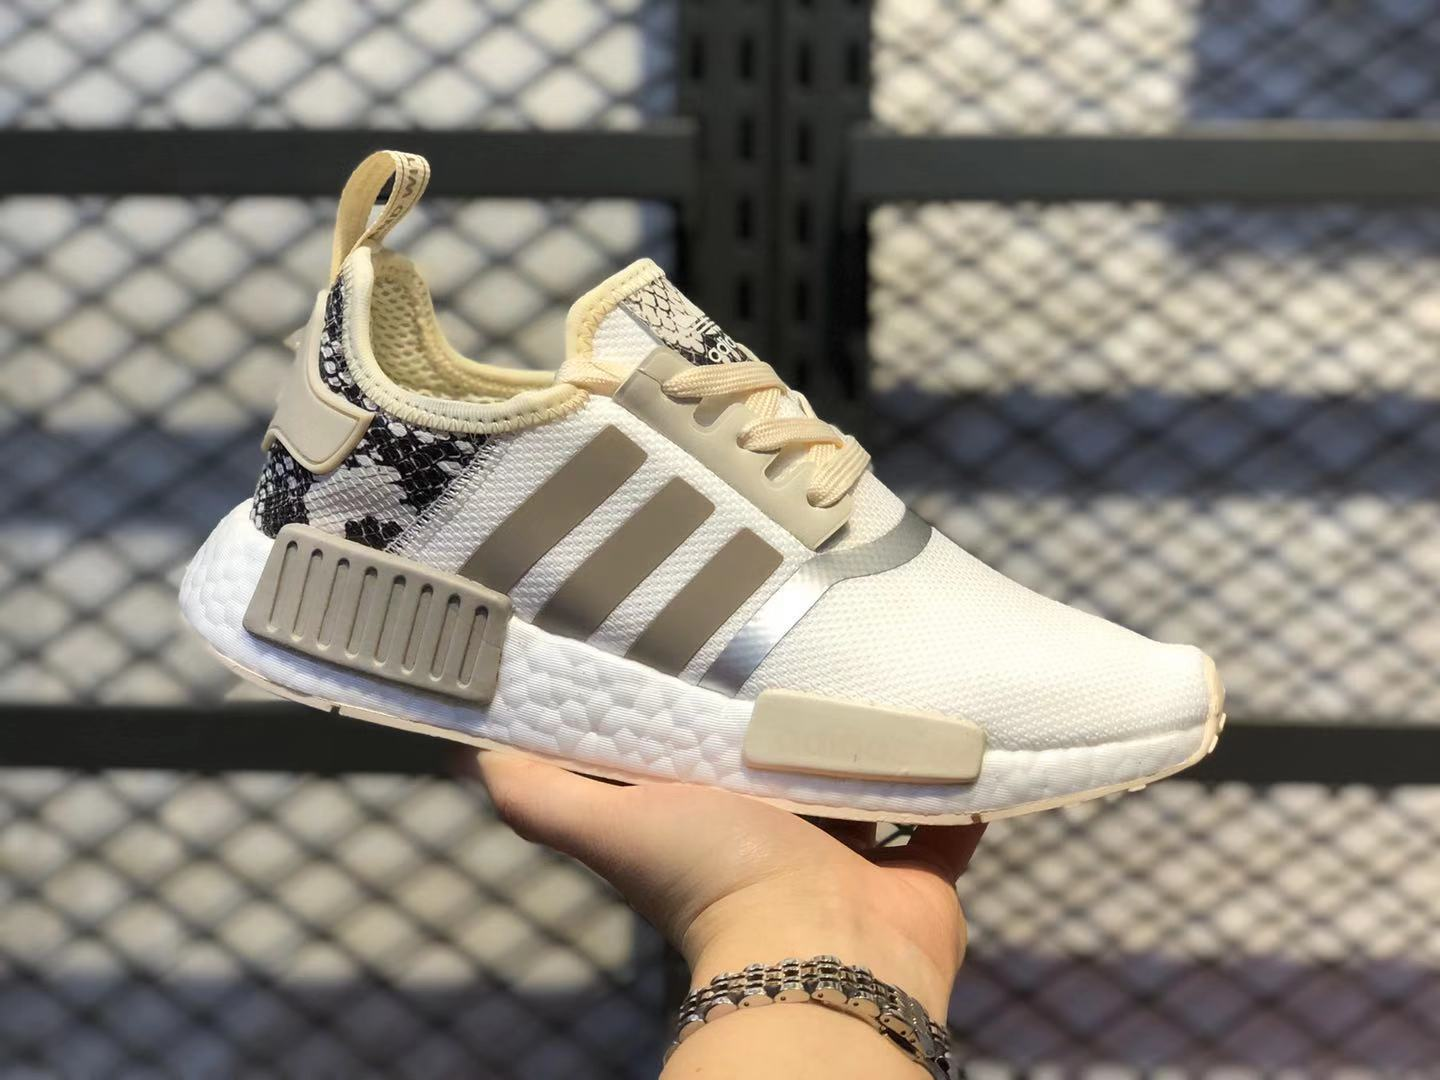 Adidas NMD R1 White/Ecru Tint/Metallic Women's Casual Shoes For Buy FV3883